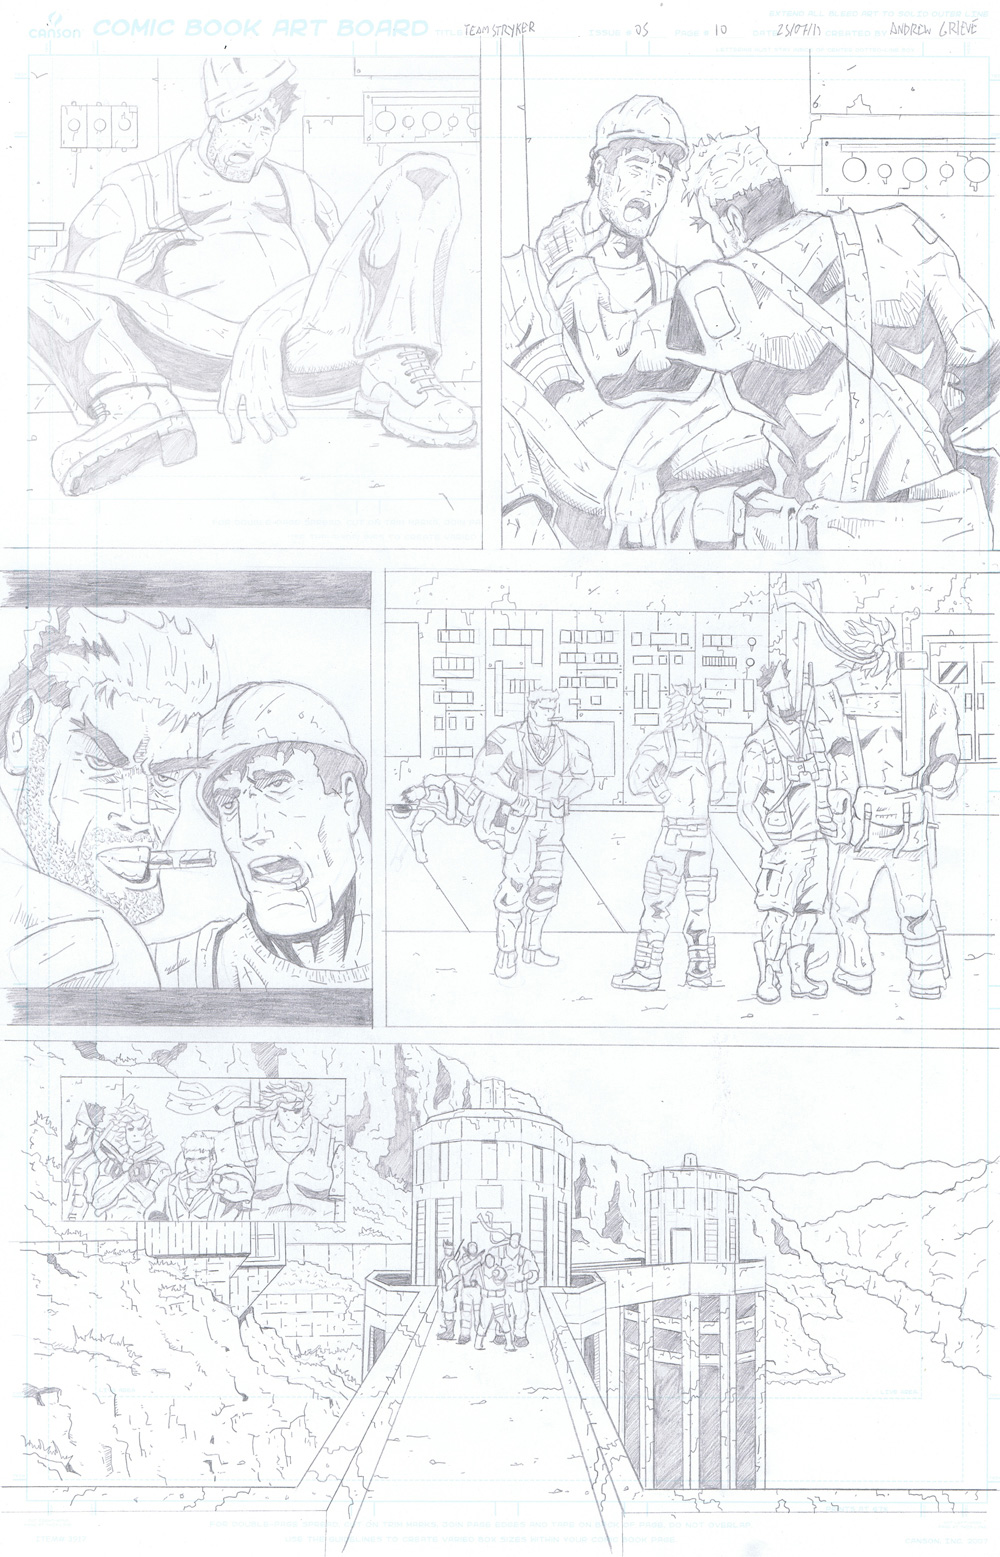 MISSION 005: PAGE 10 PENCIL